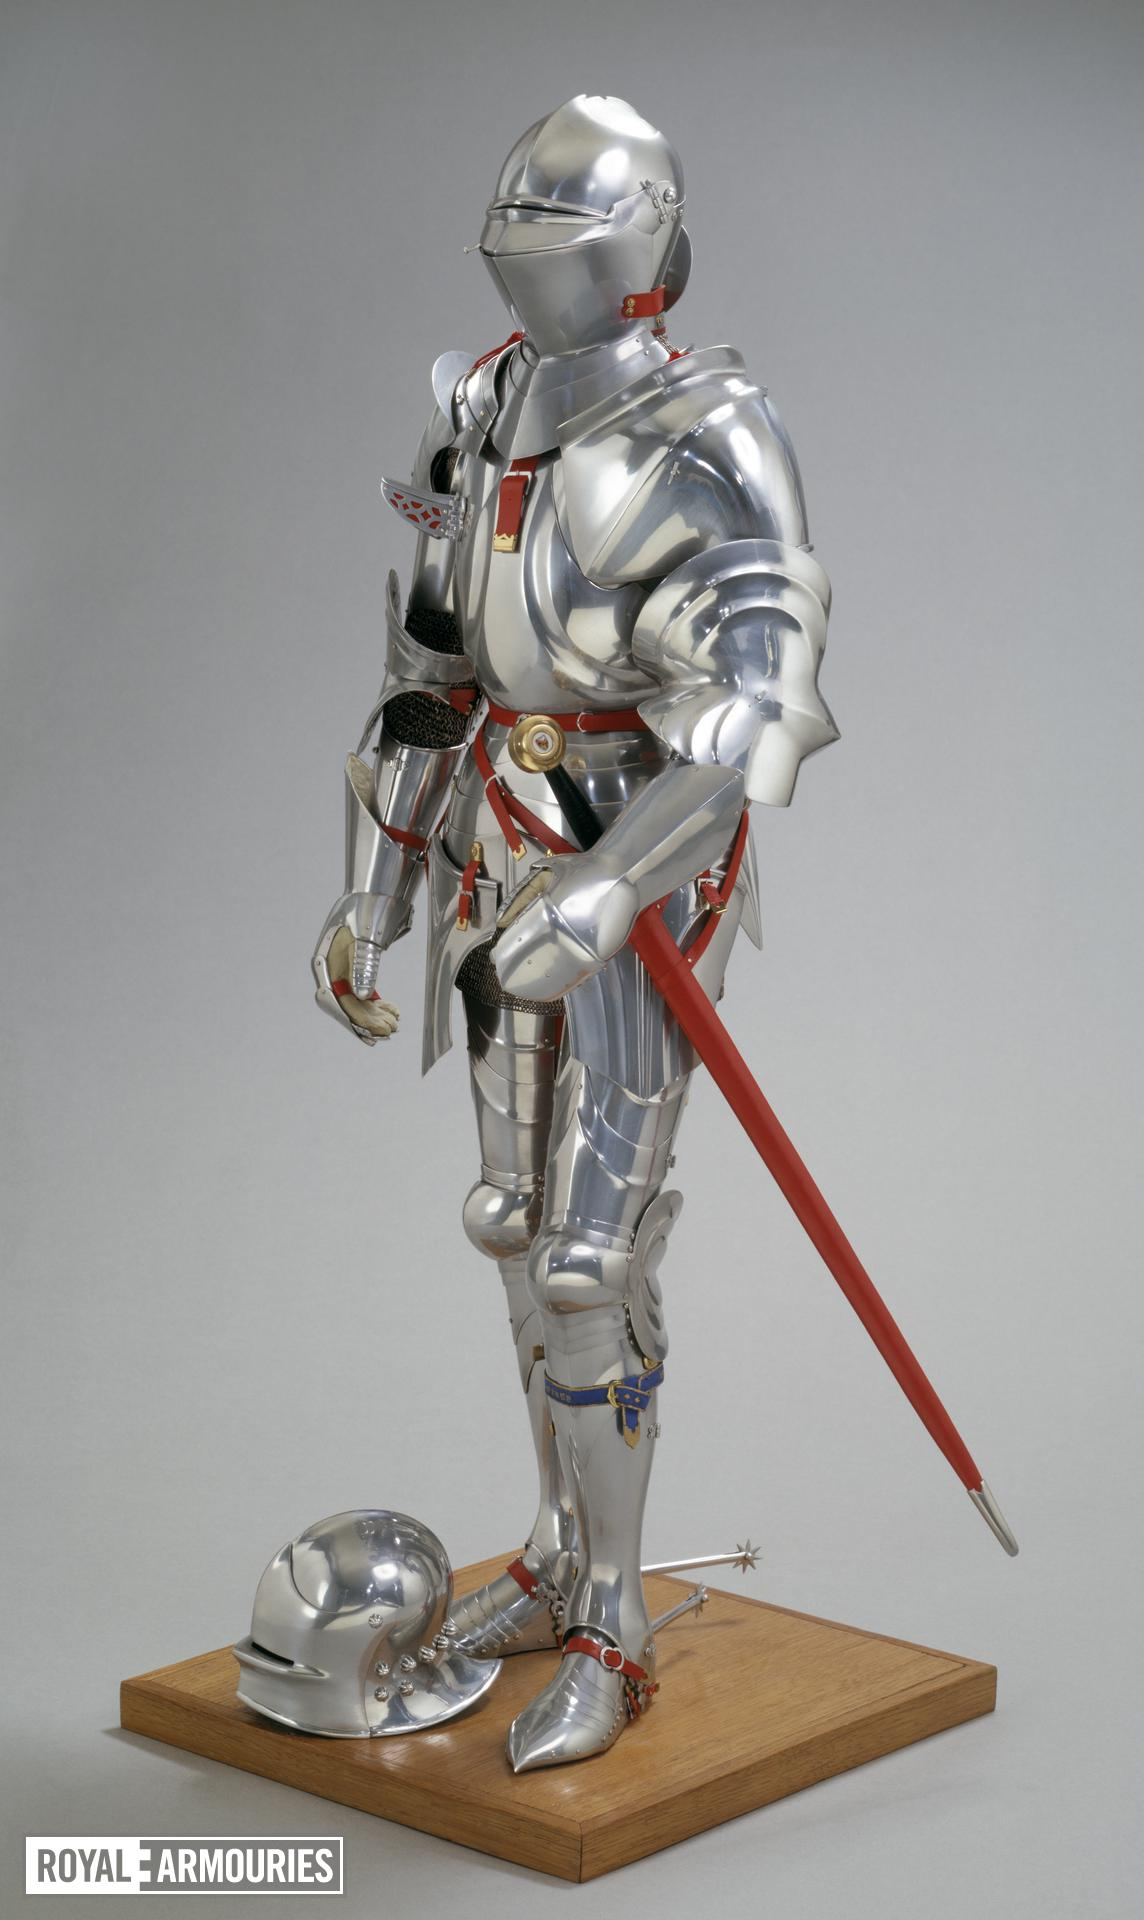 Mannequin and Armour - Model mannequin and Armour The mannequin and the attached armour in the style of Milan about 1450, by Peter Wroe